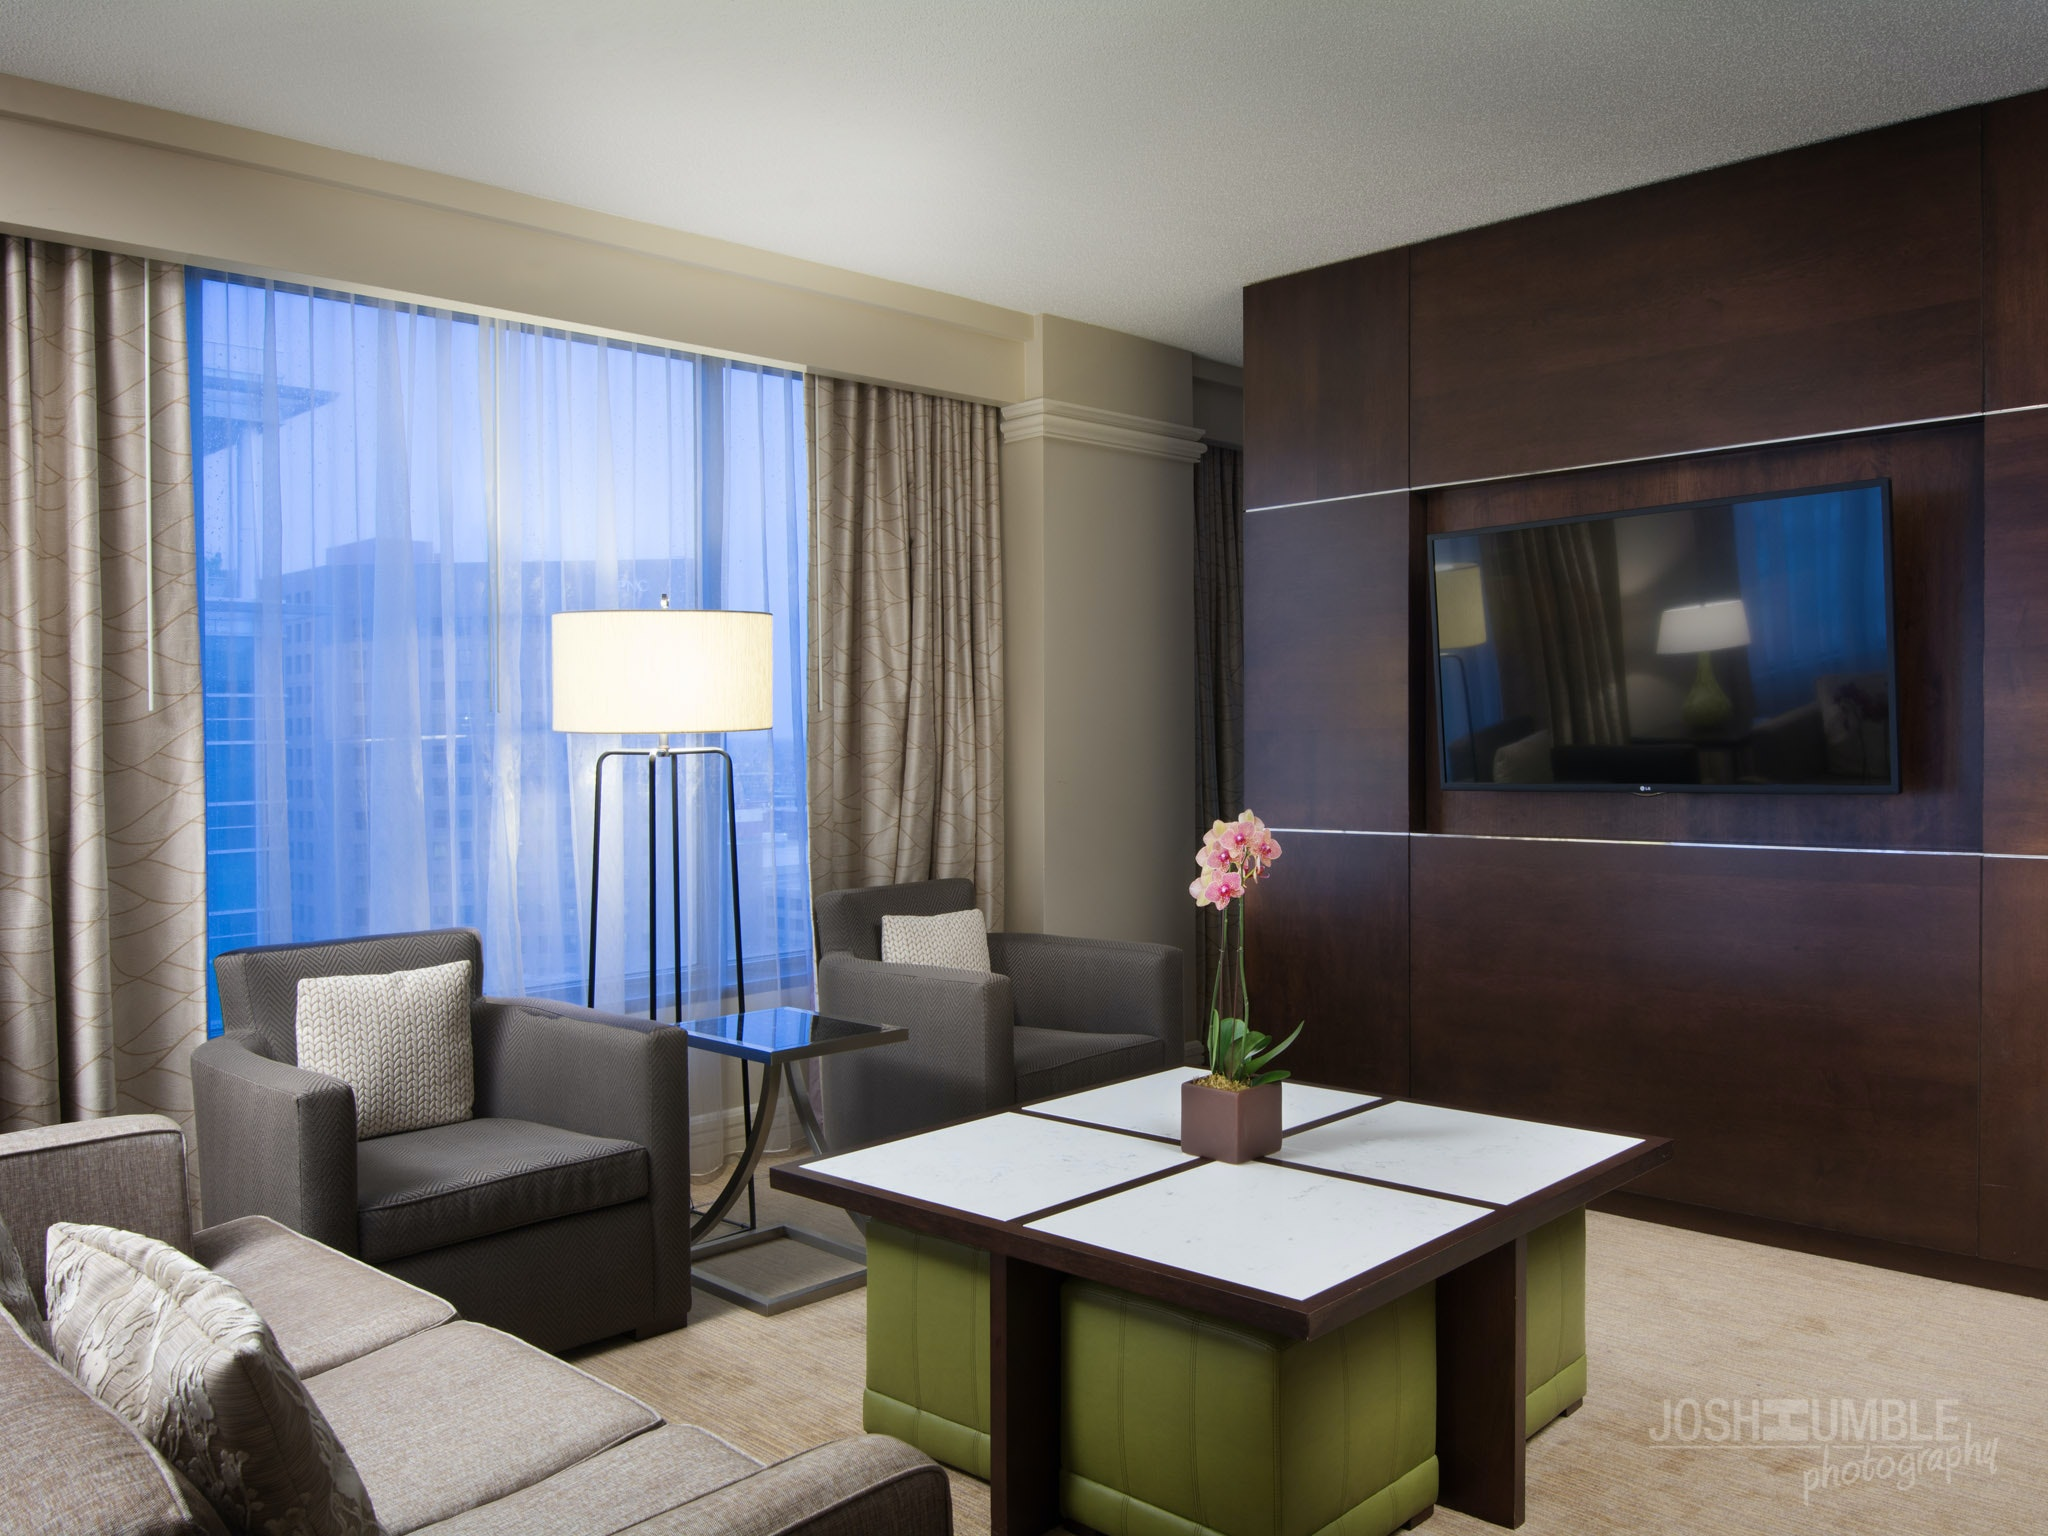 Westin Indianapolis Guest Rooms, Interior Photography ©Josh Humble